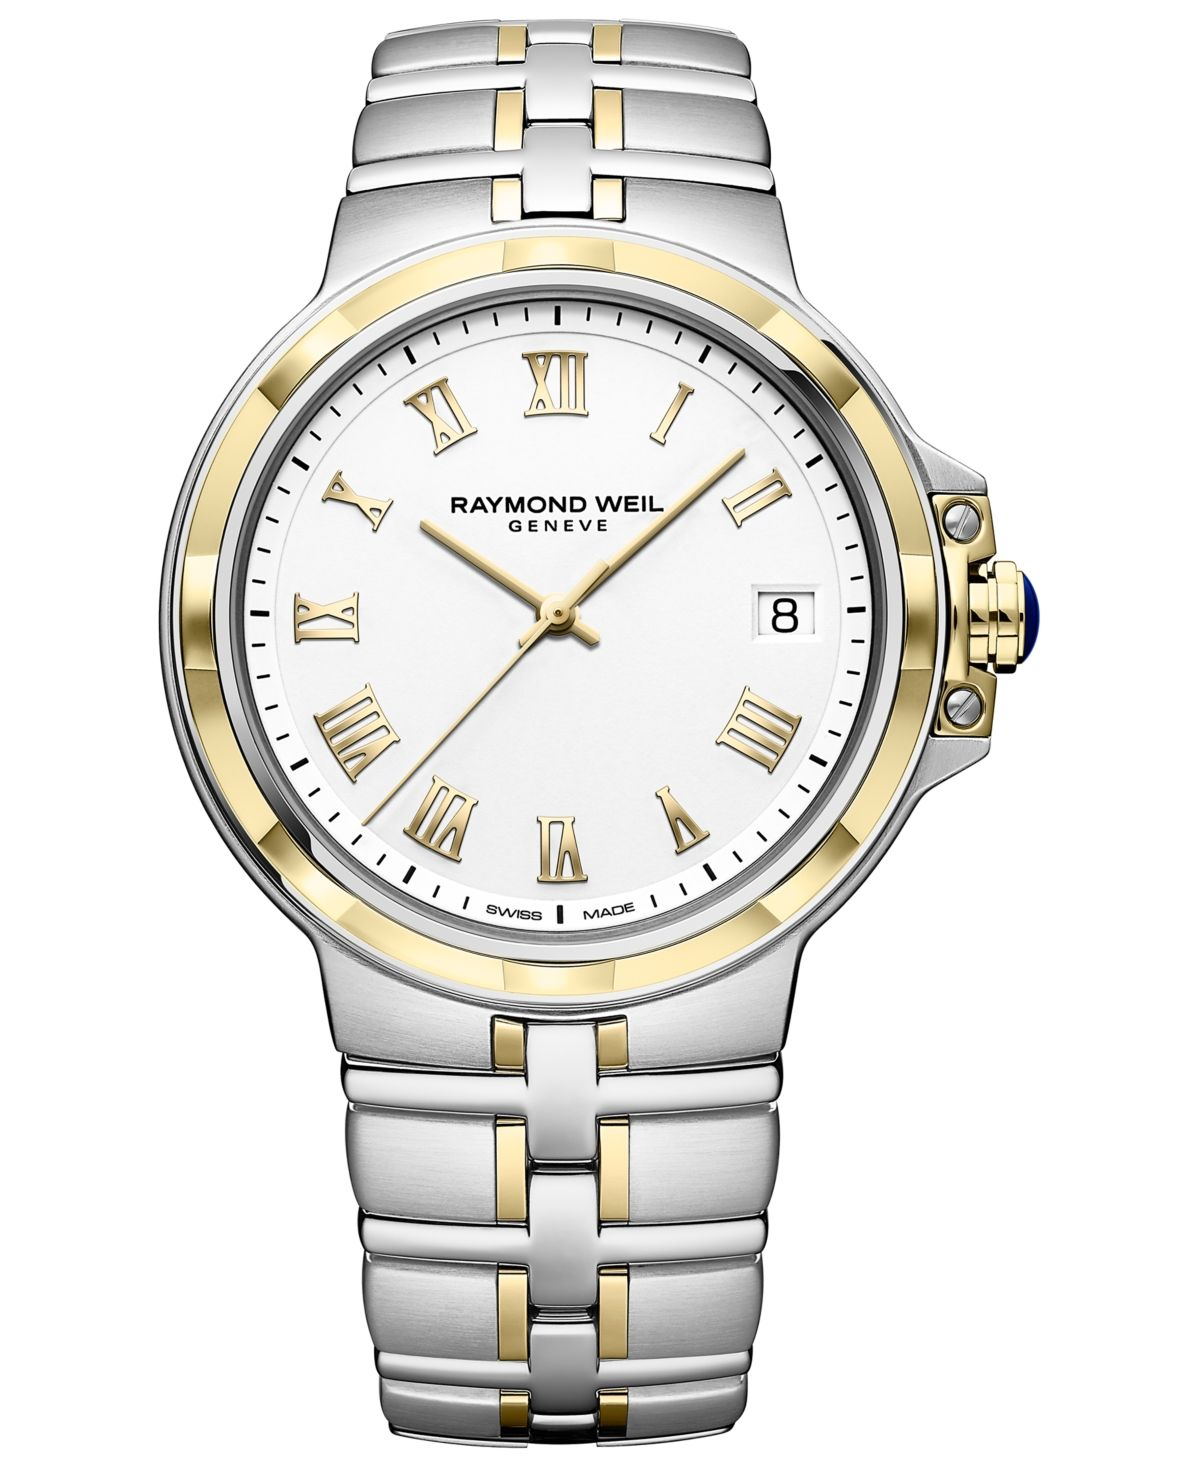 Gold-tone Roman numerals elevate the handsome dial of this two-tone stainless steel Swiss bracelet watch from Raymond Weil's streamlined Parsifal collection. Style #5580-stp-00308